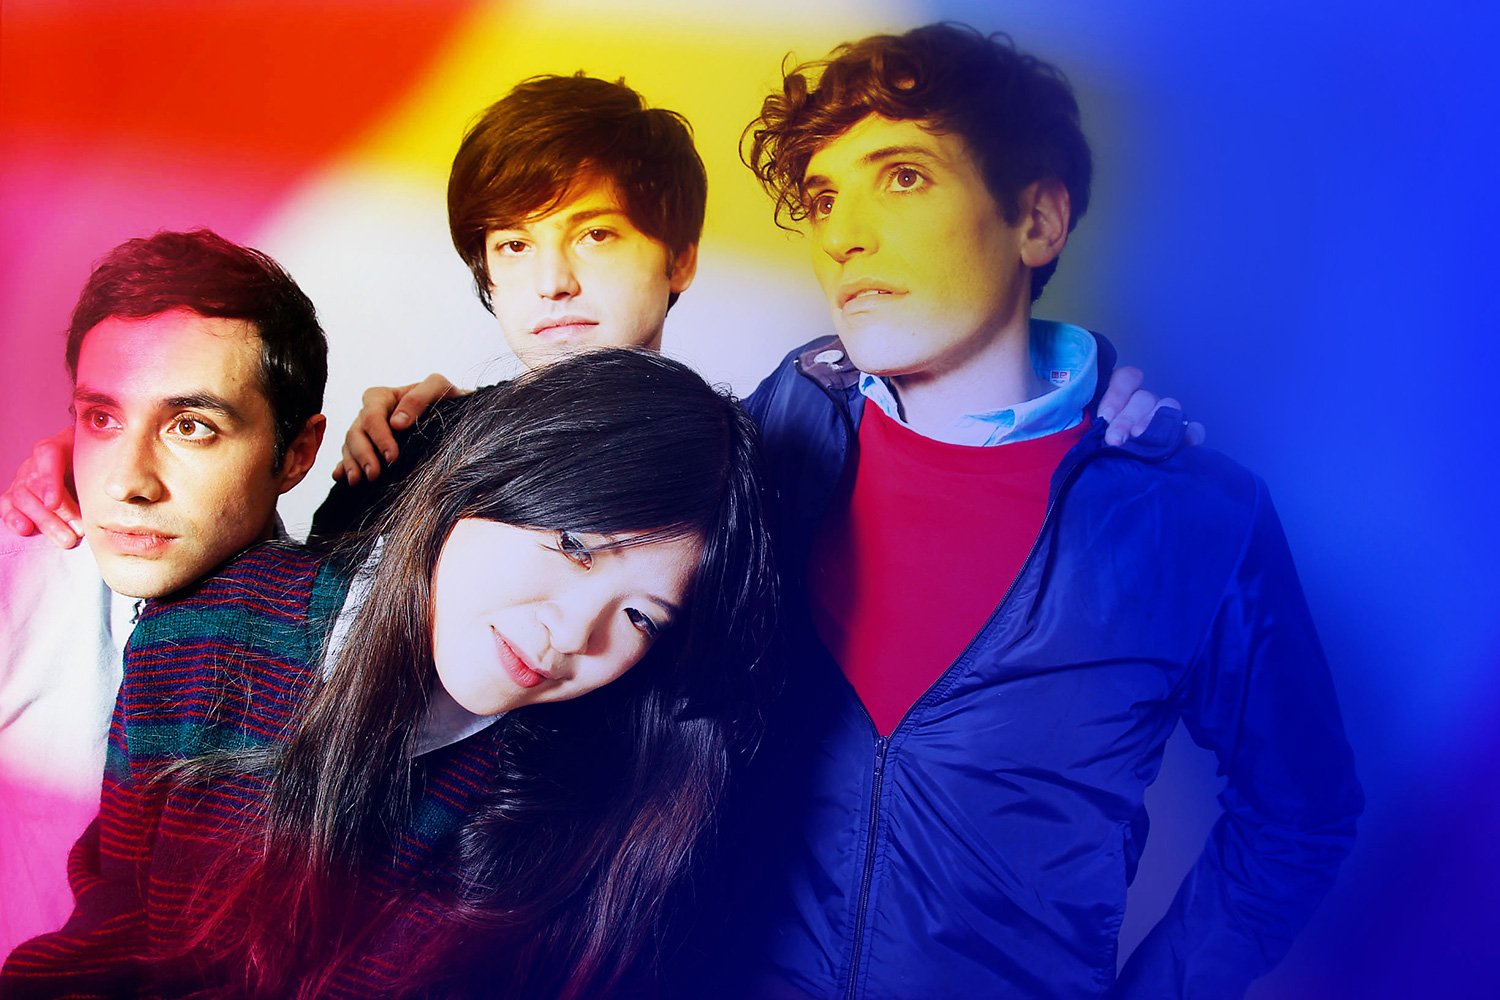 Новая песня The Pains of Being Pure at Heart